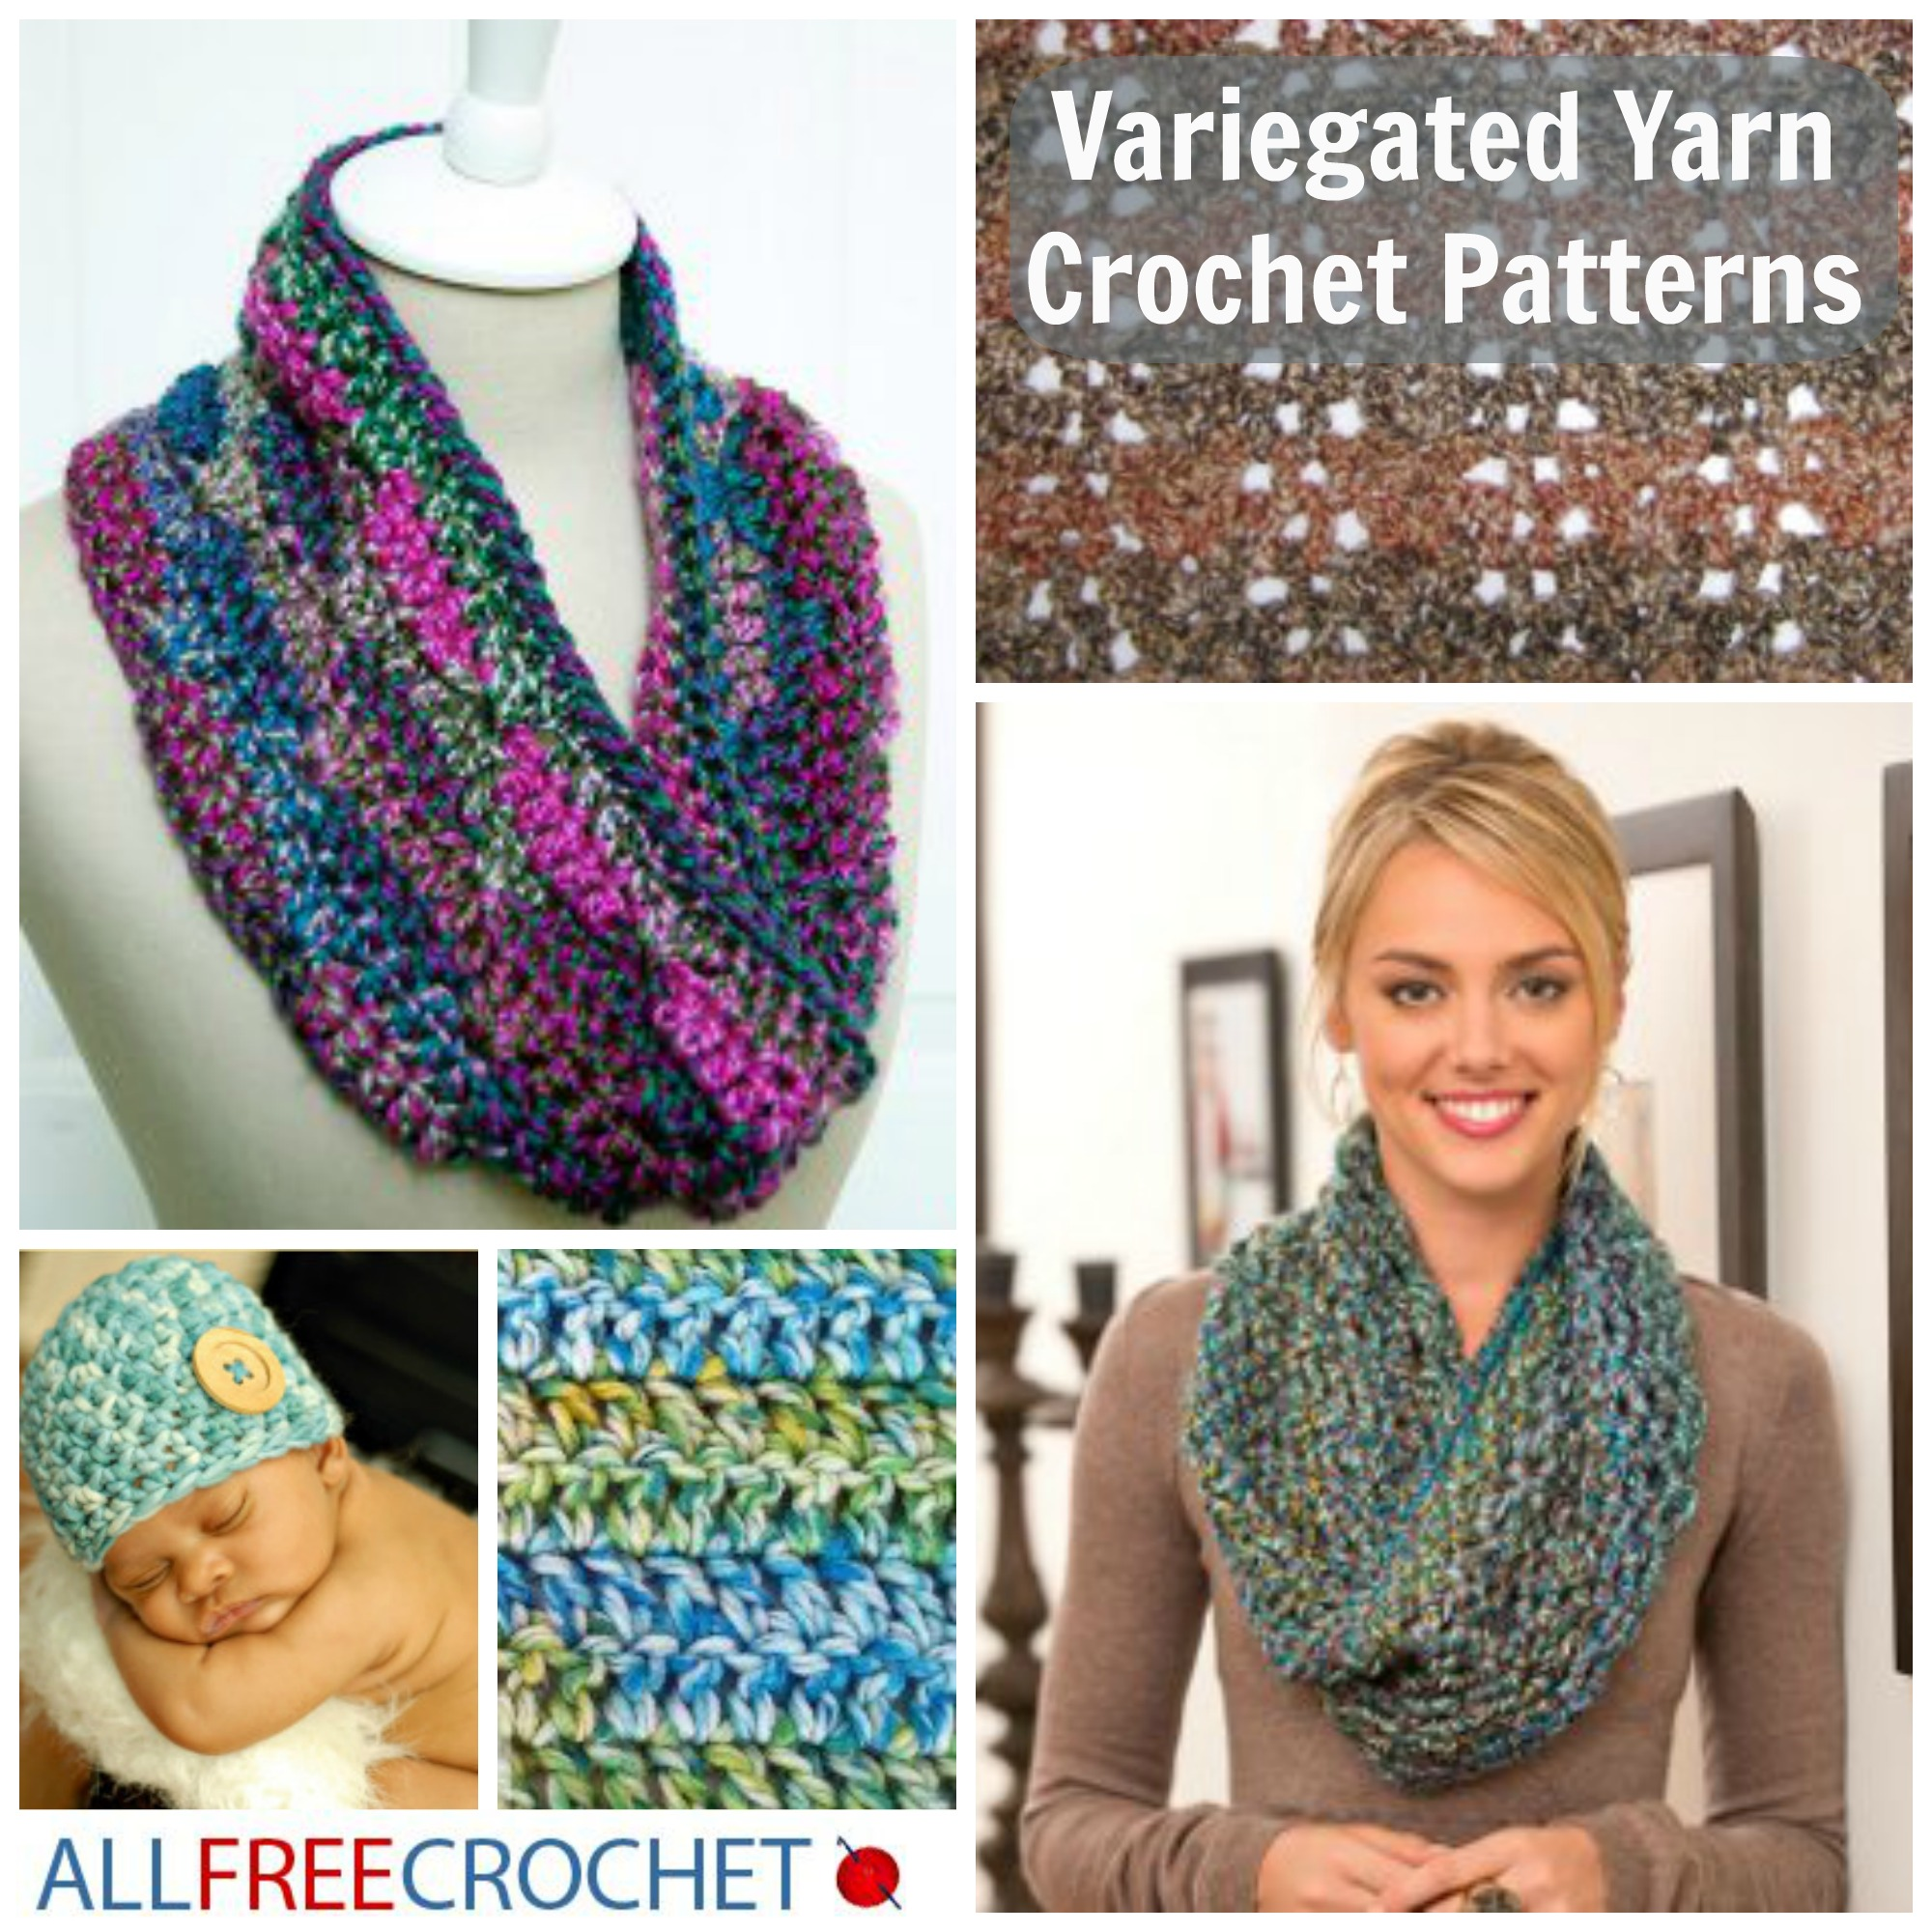 966b54d70 No-Effort Colorful Crochet  Variegated Yarn Patterns - Stitch and Unwind